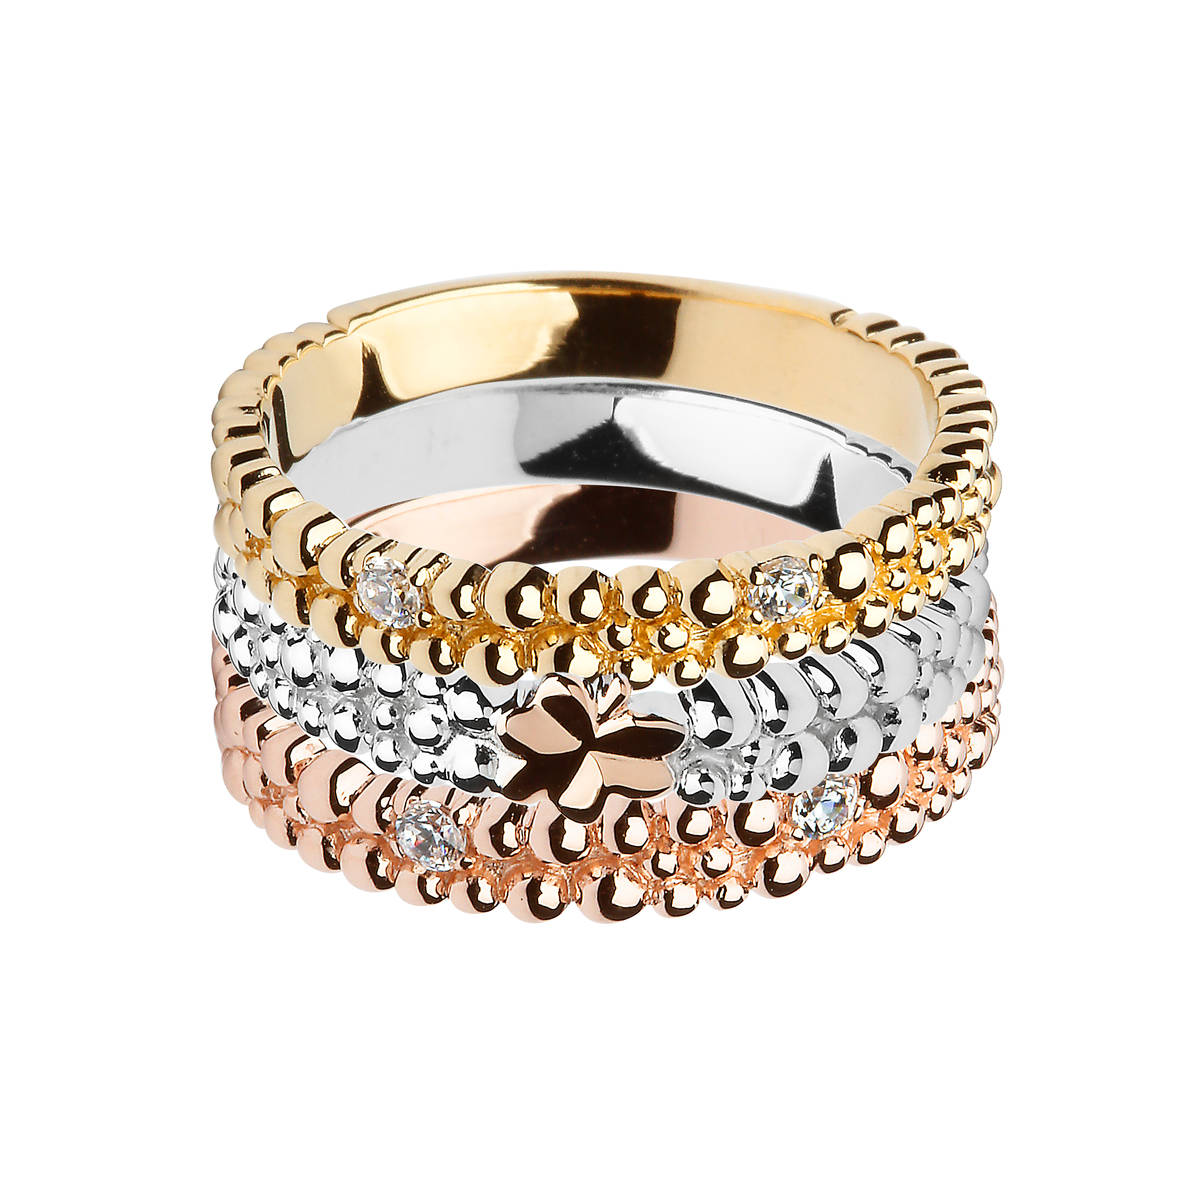 House of Lor 3 part beaded silver ring set with czs with yellow gold plated and rose gold plated sections withcentre Shamrock made from rare Irish goldpick/dapck